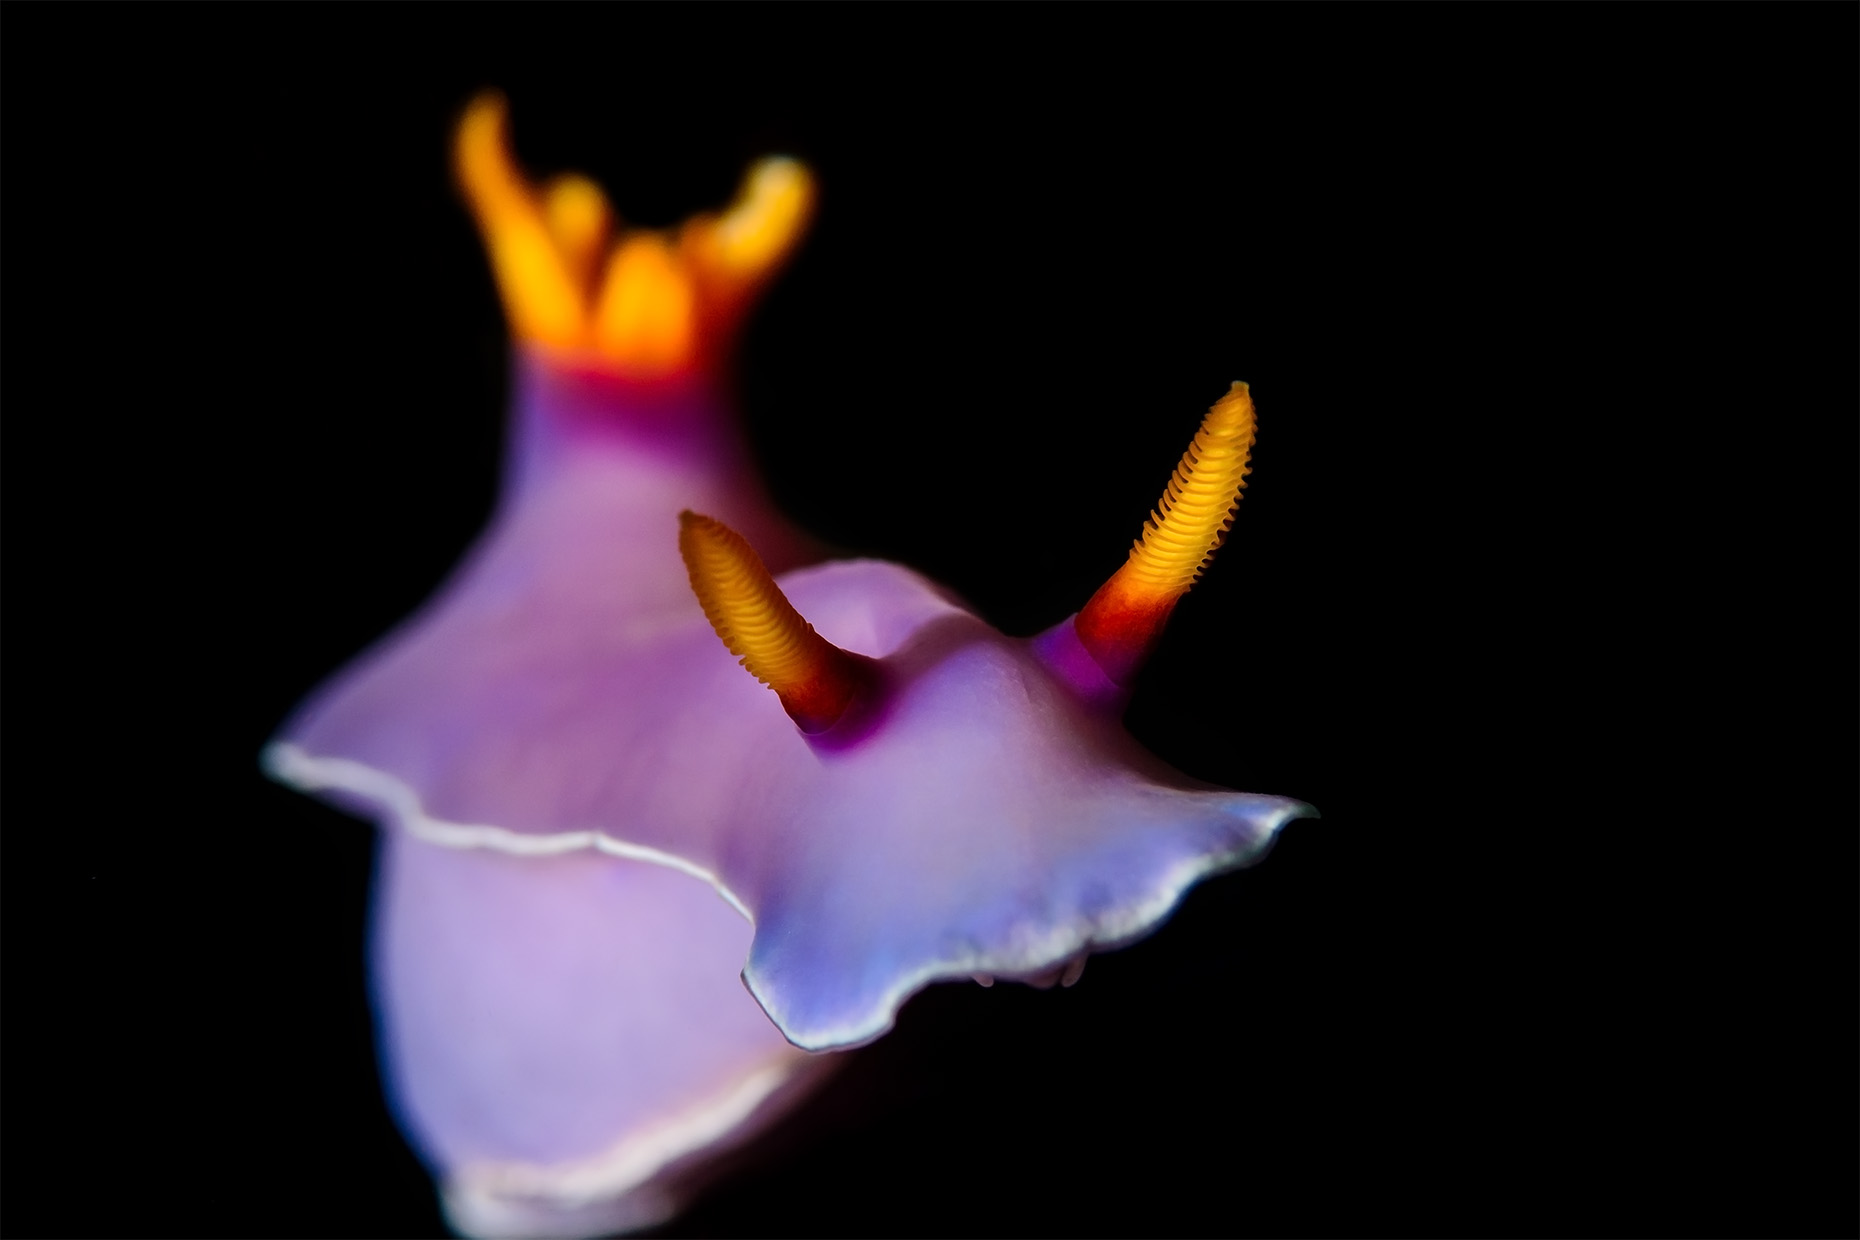 Royal hypselodoris